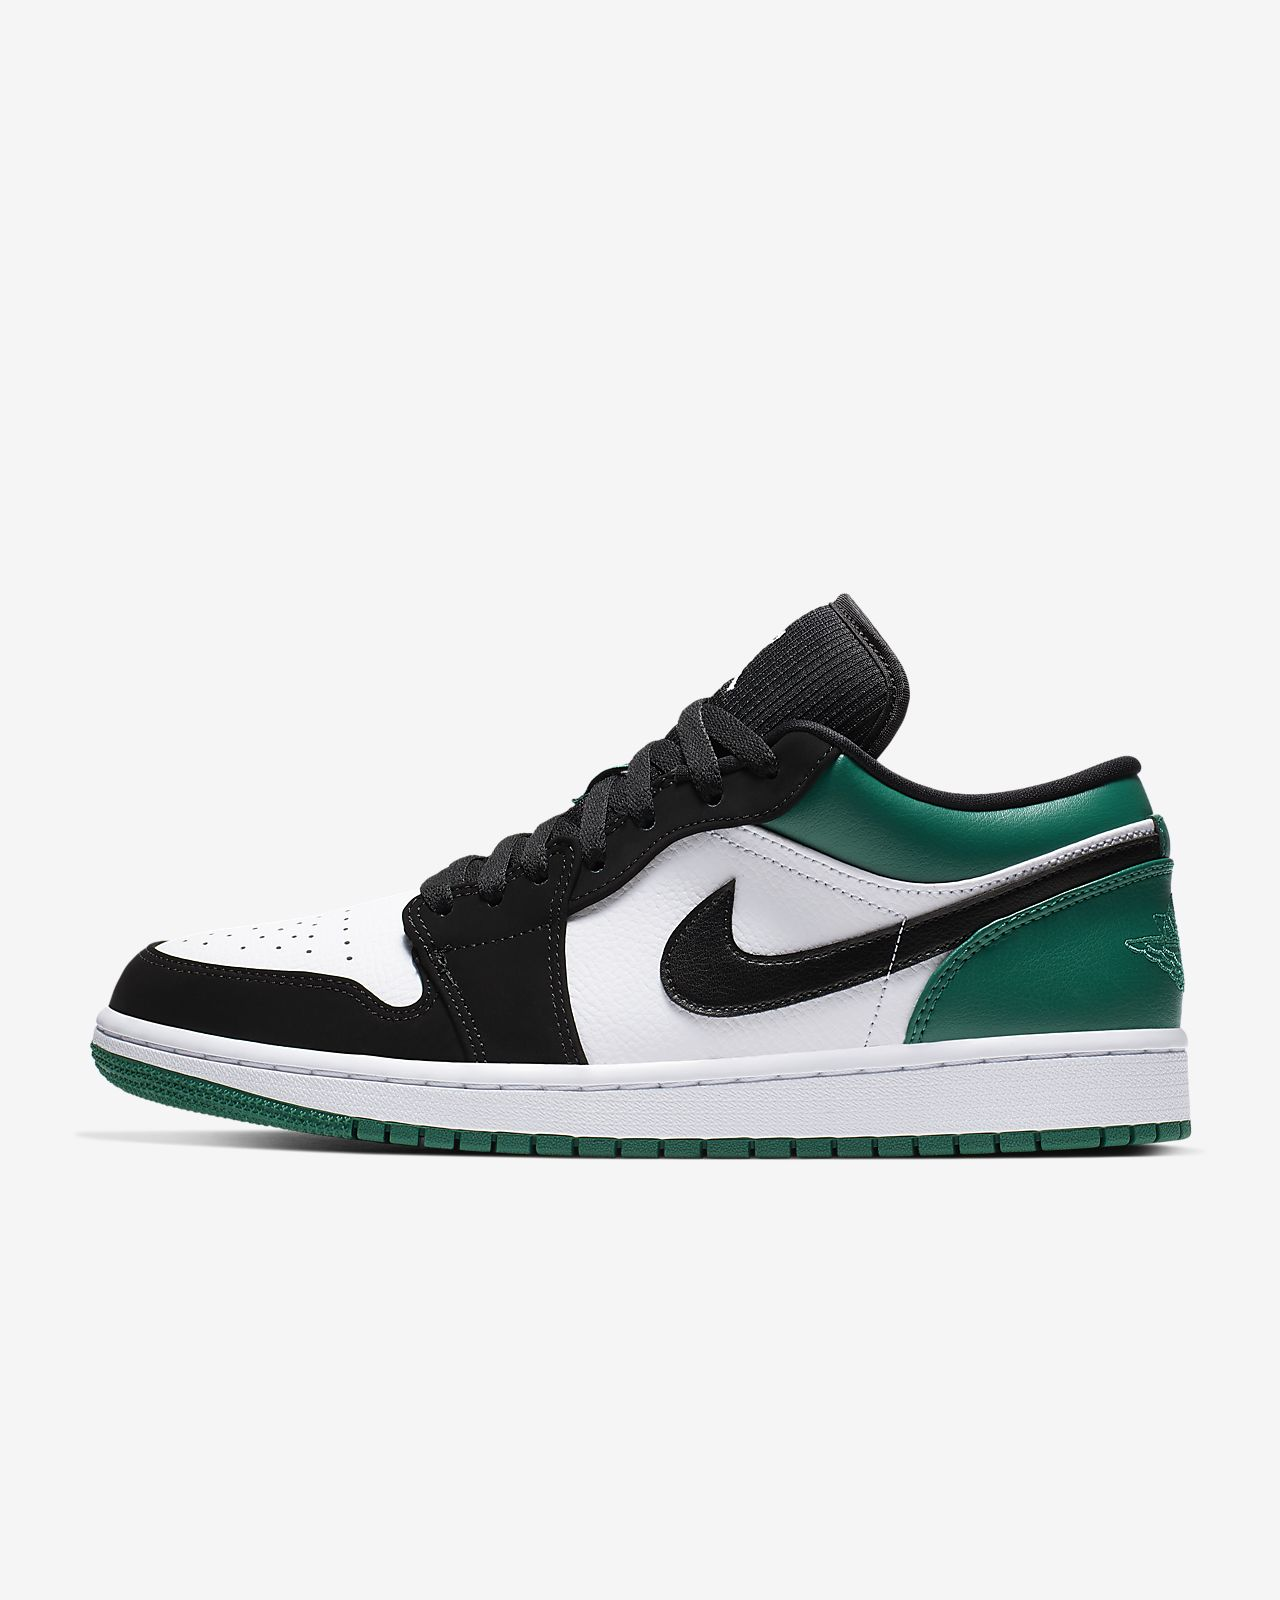 9aa154fe7e8 Air Jordan 1 Low Men's Shoe. Nike.com